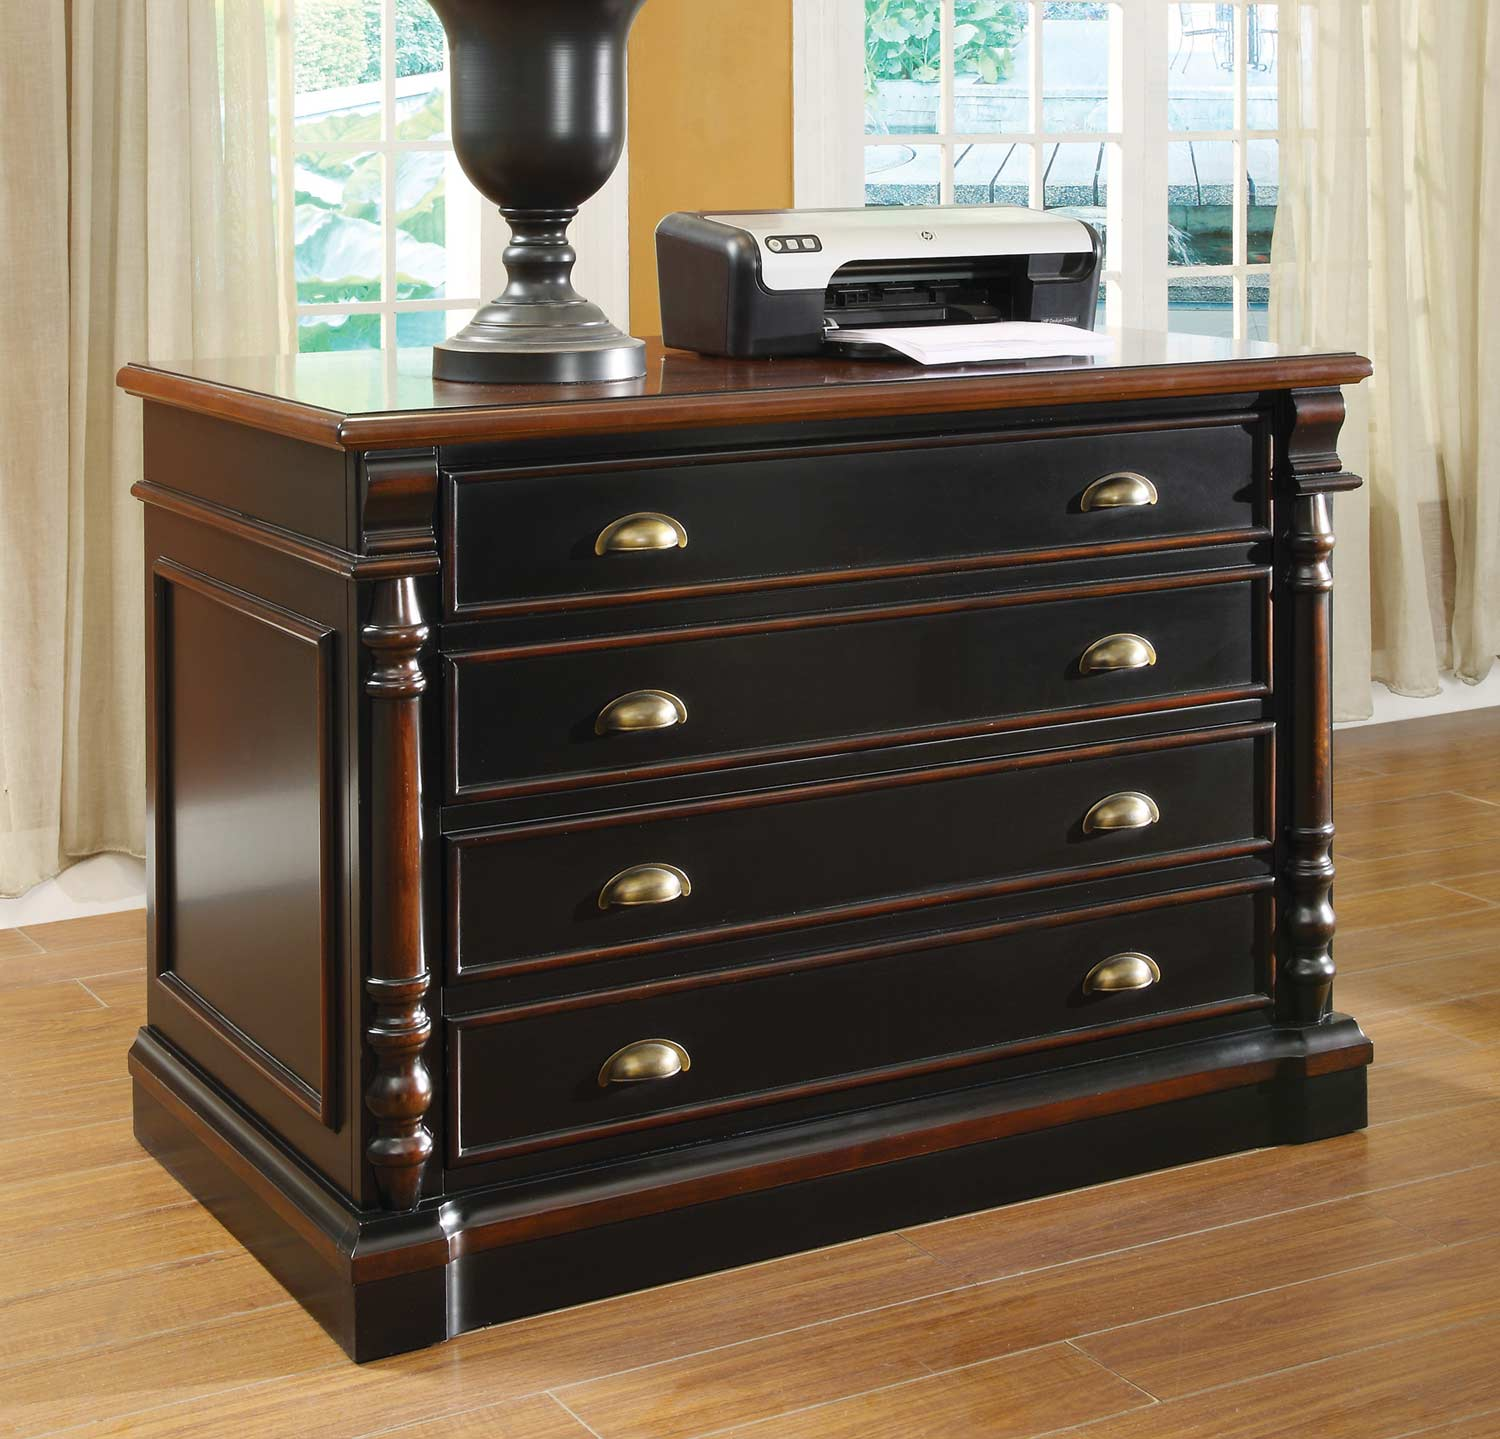 Coaster Ravenel File Cabinet - Black/Warm Amber